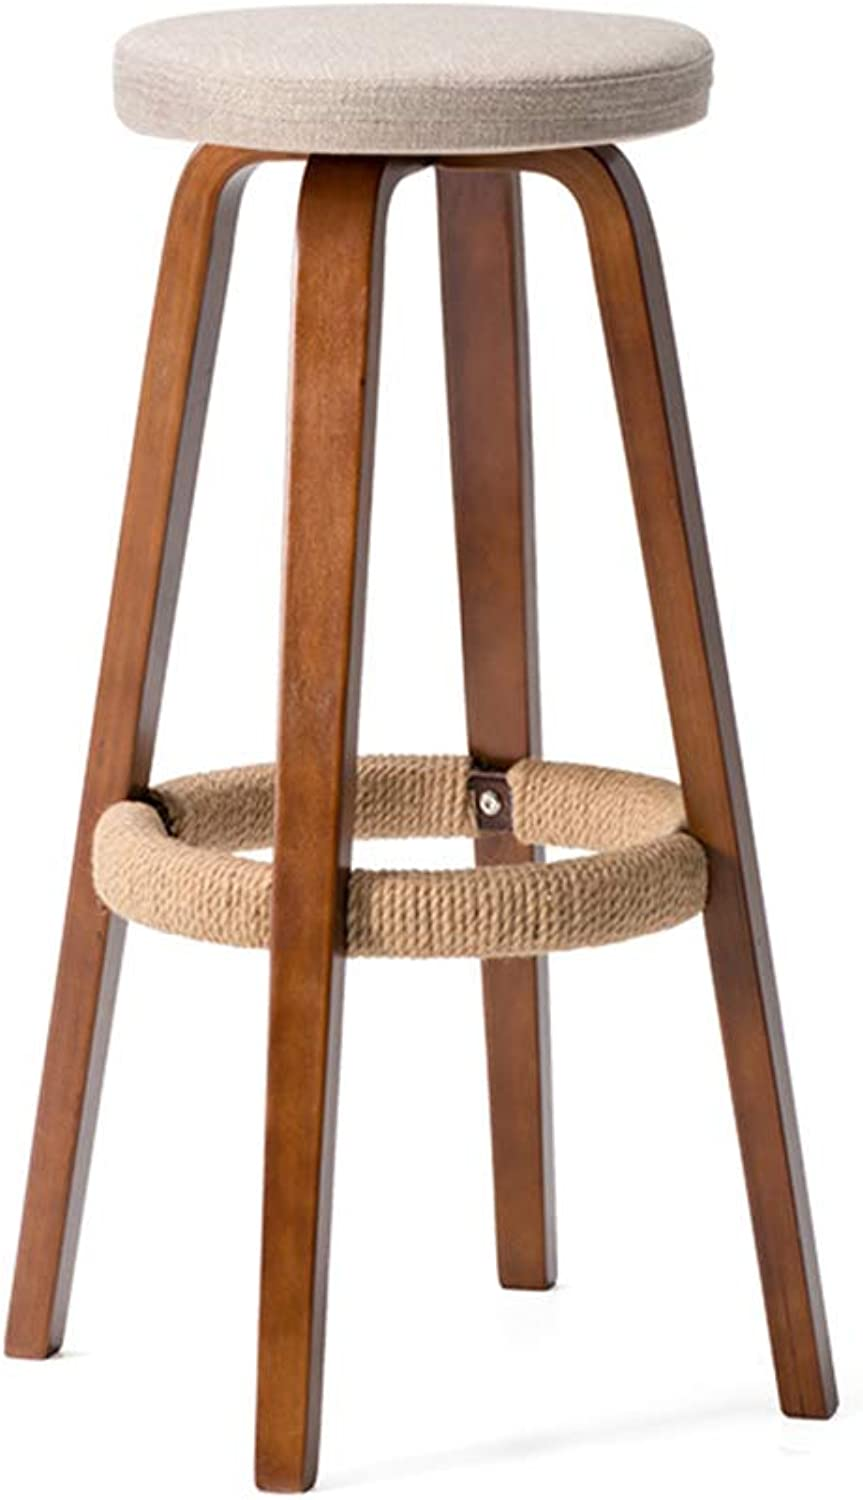 LIQICAI Bar Stool with Brown Footrest Cotton and Linen Seating Extremely Comfy, 4-Leg Structure, 6 colors Optional (color   Beige, Size   45x45x70cm)